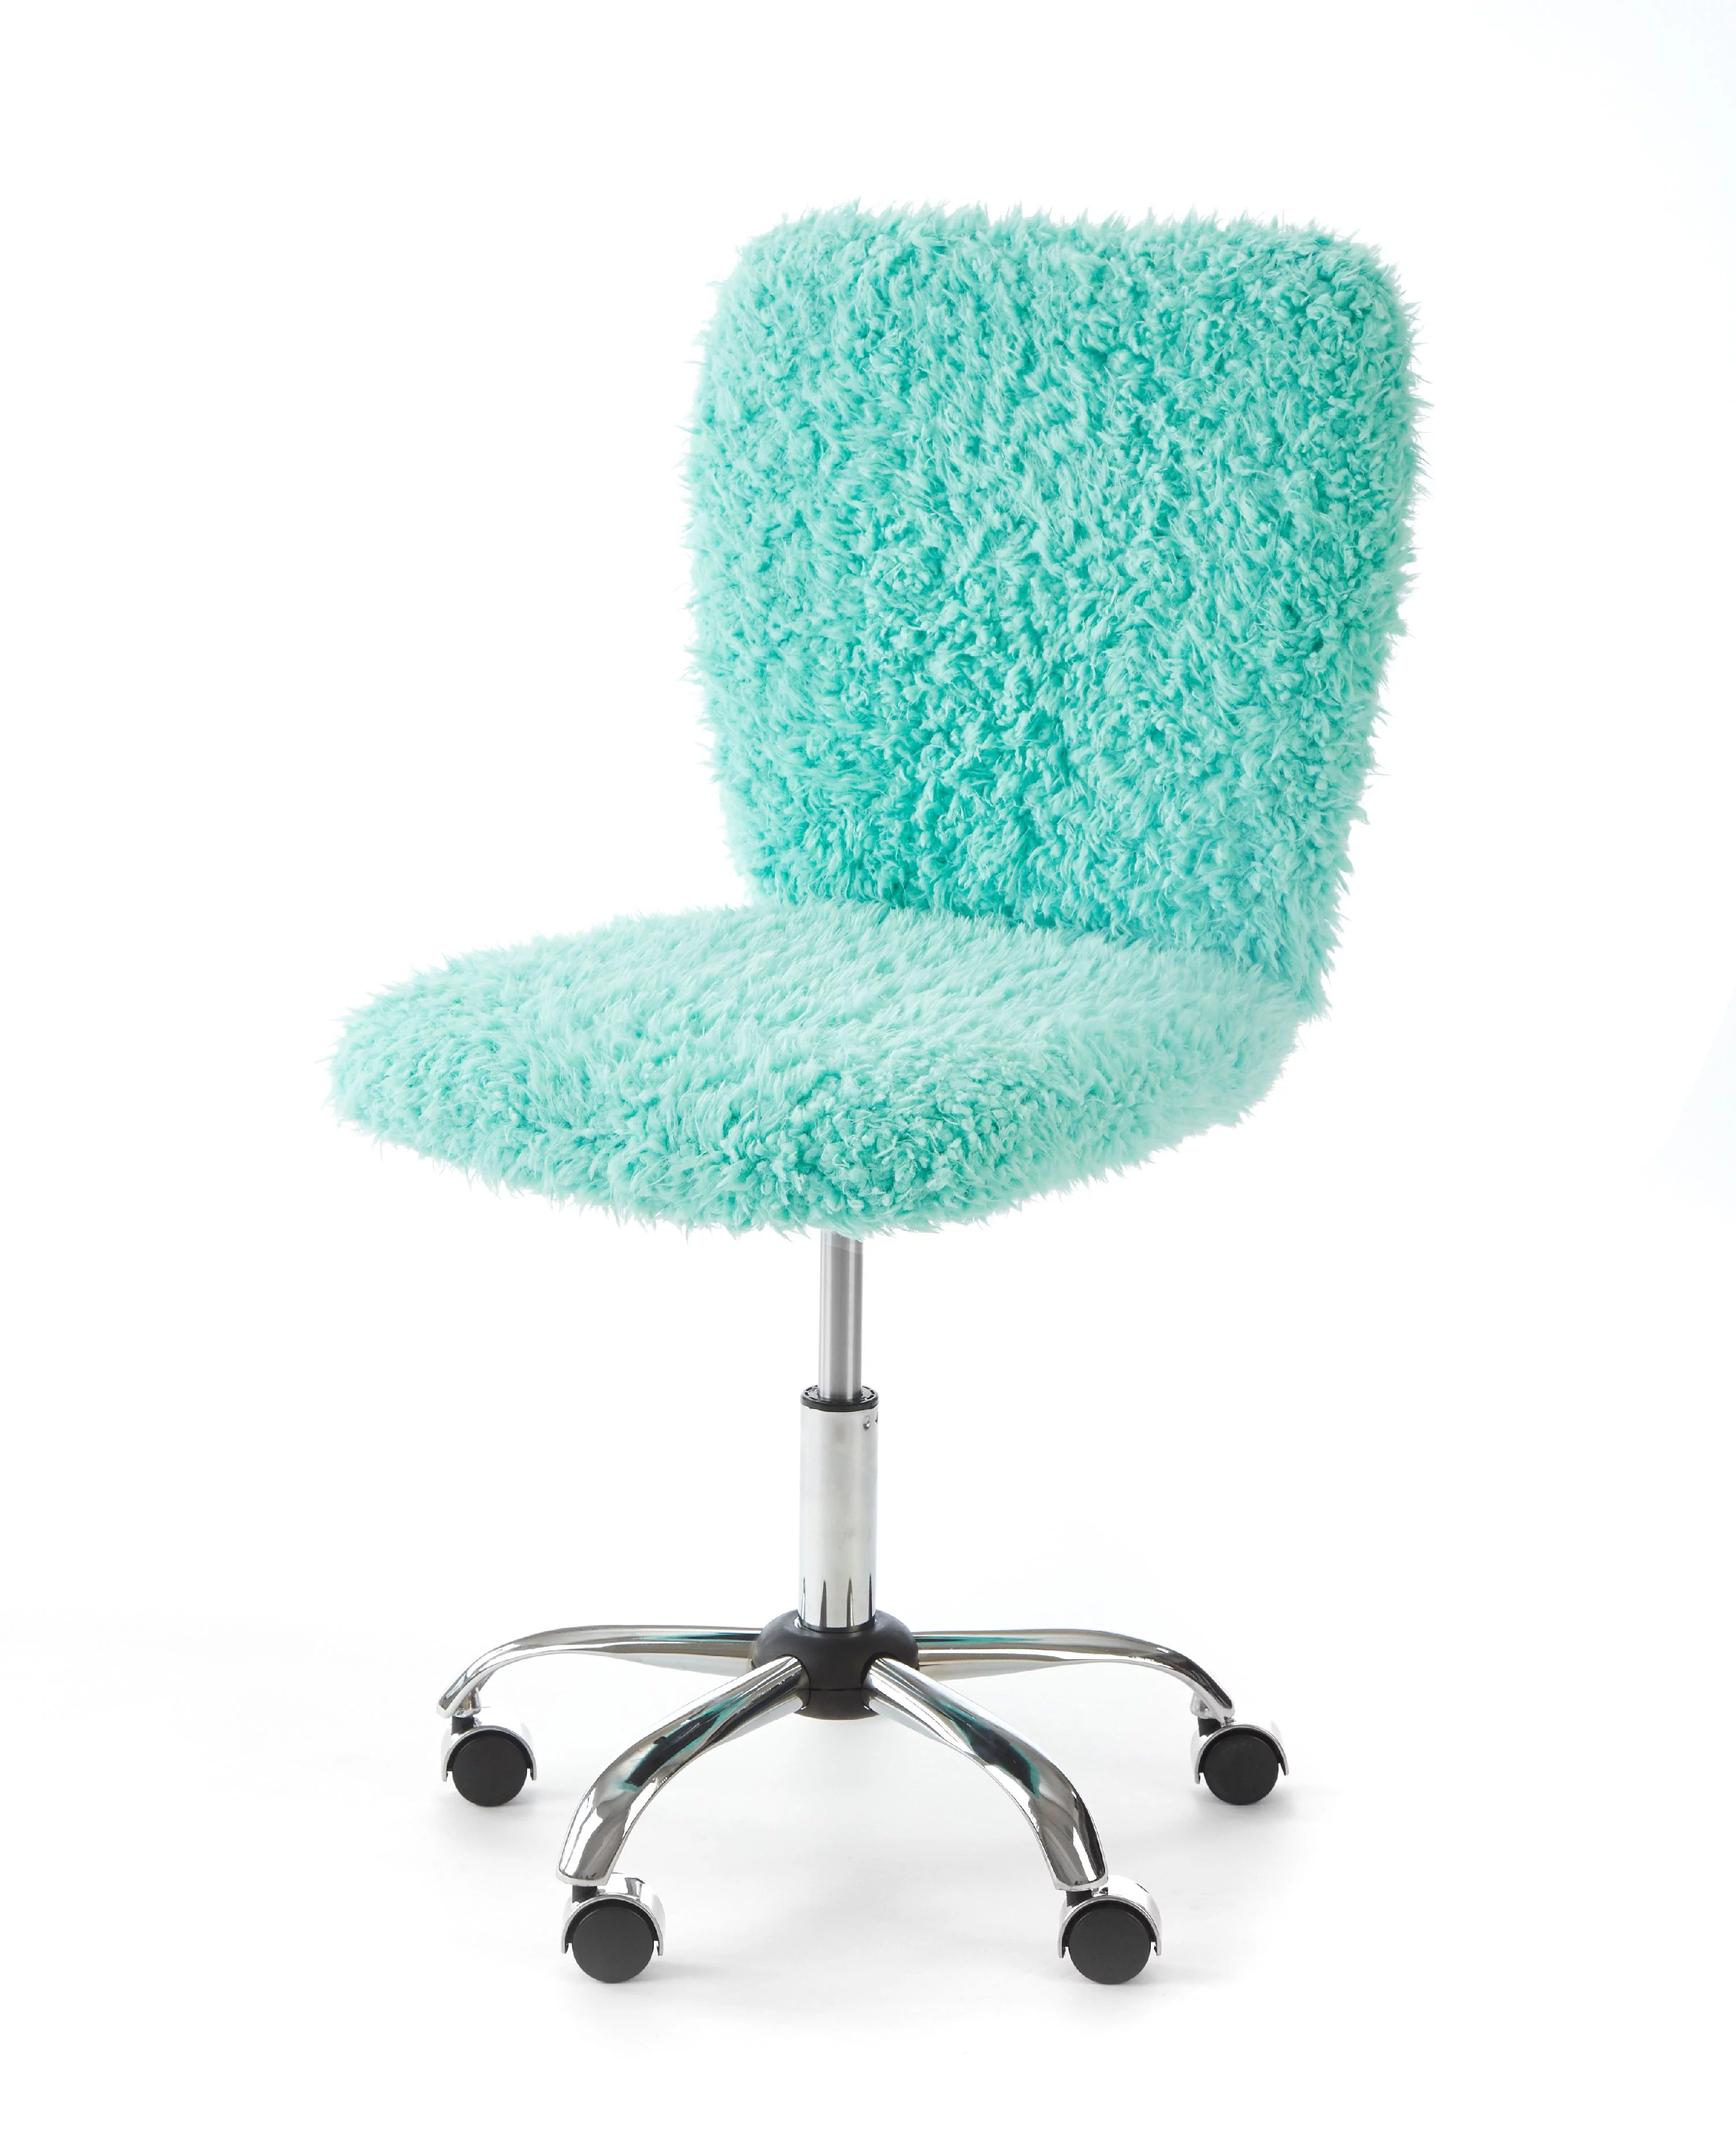 turquoise office chair recliner covers adelaide urban shop faux fur armless swivel task multiple colors walmart com